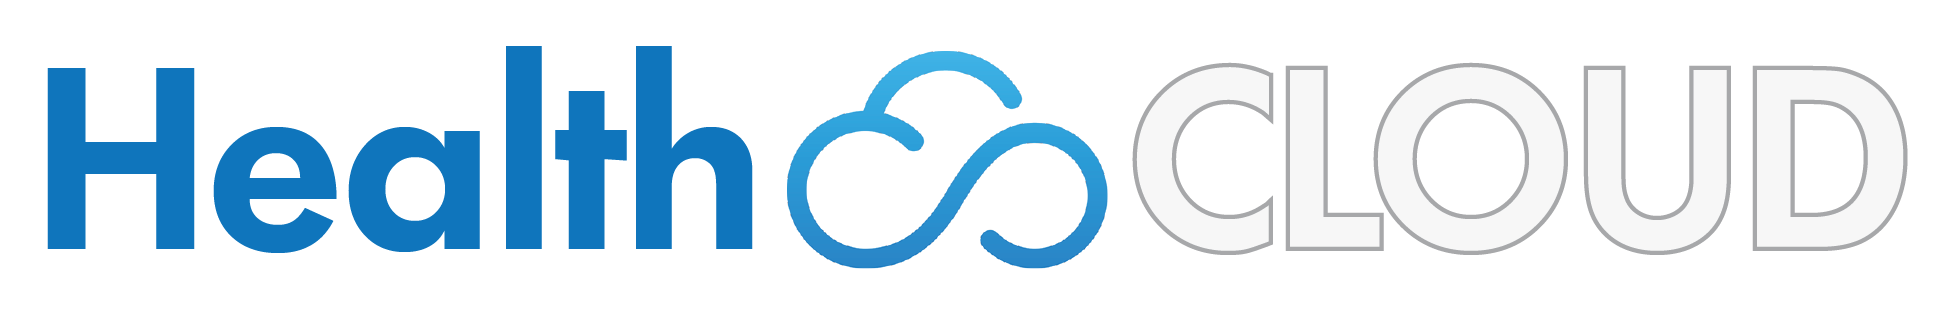 health cloud icon-01